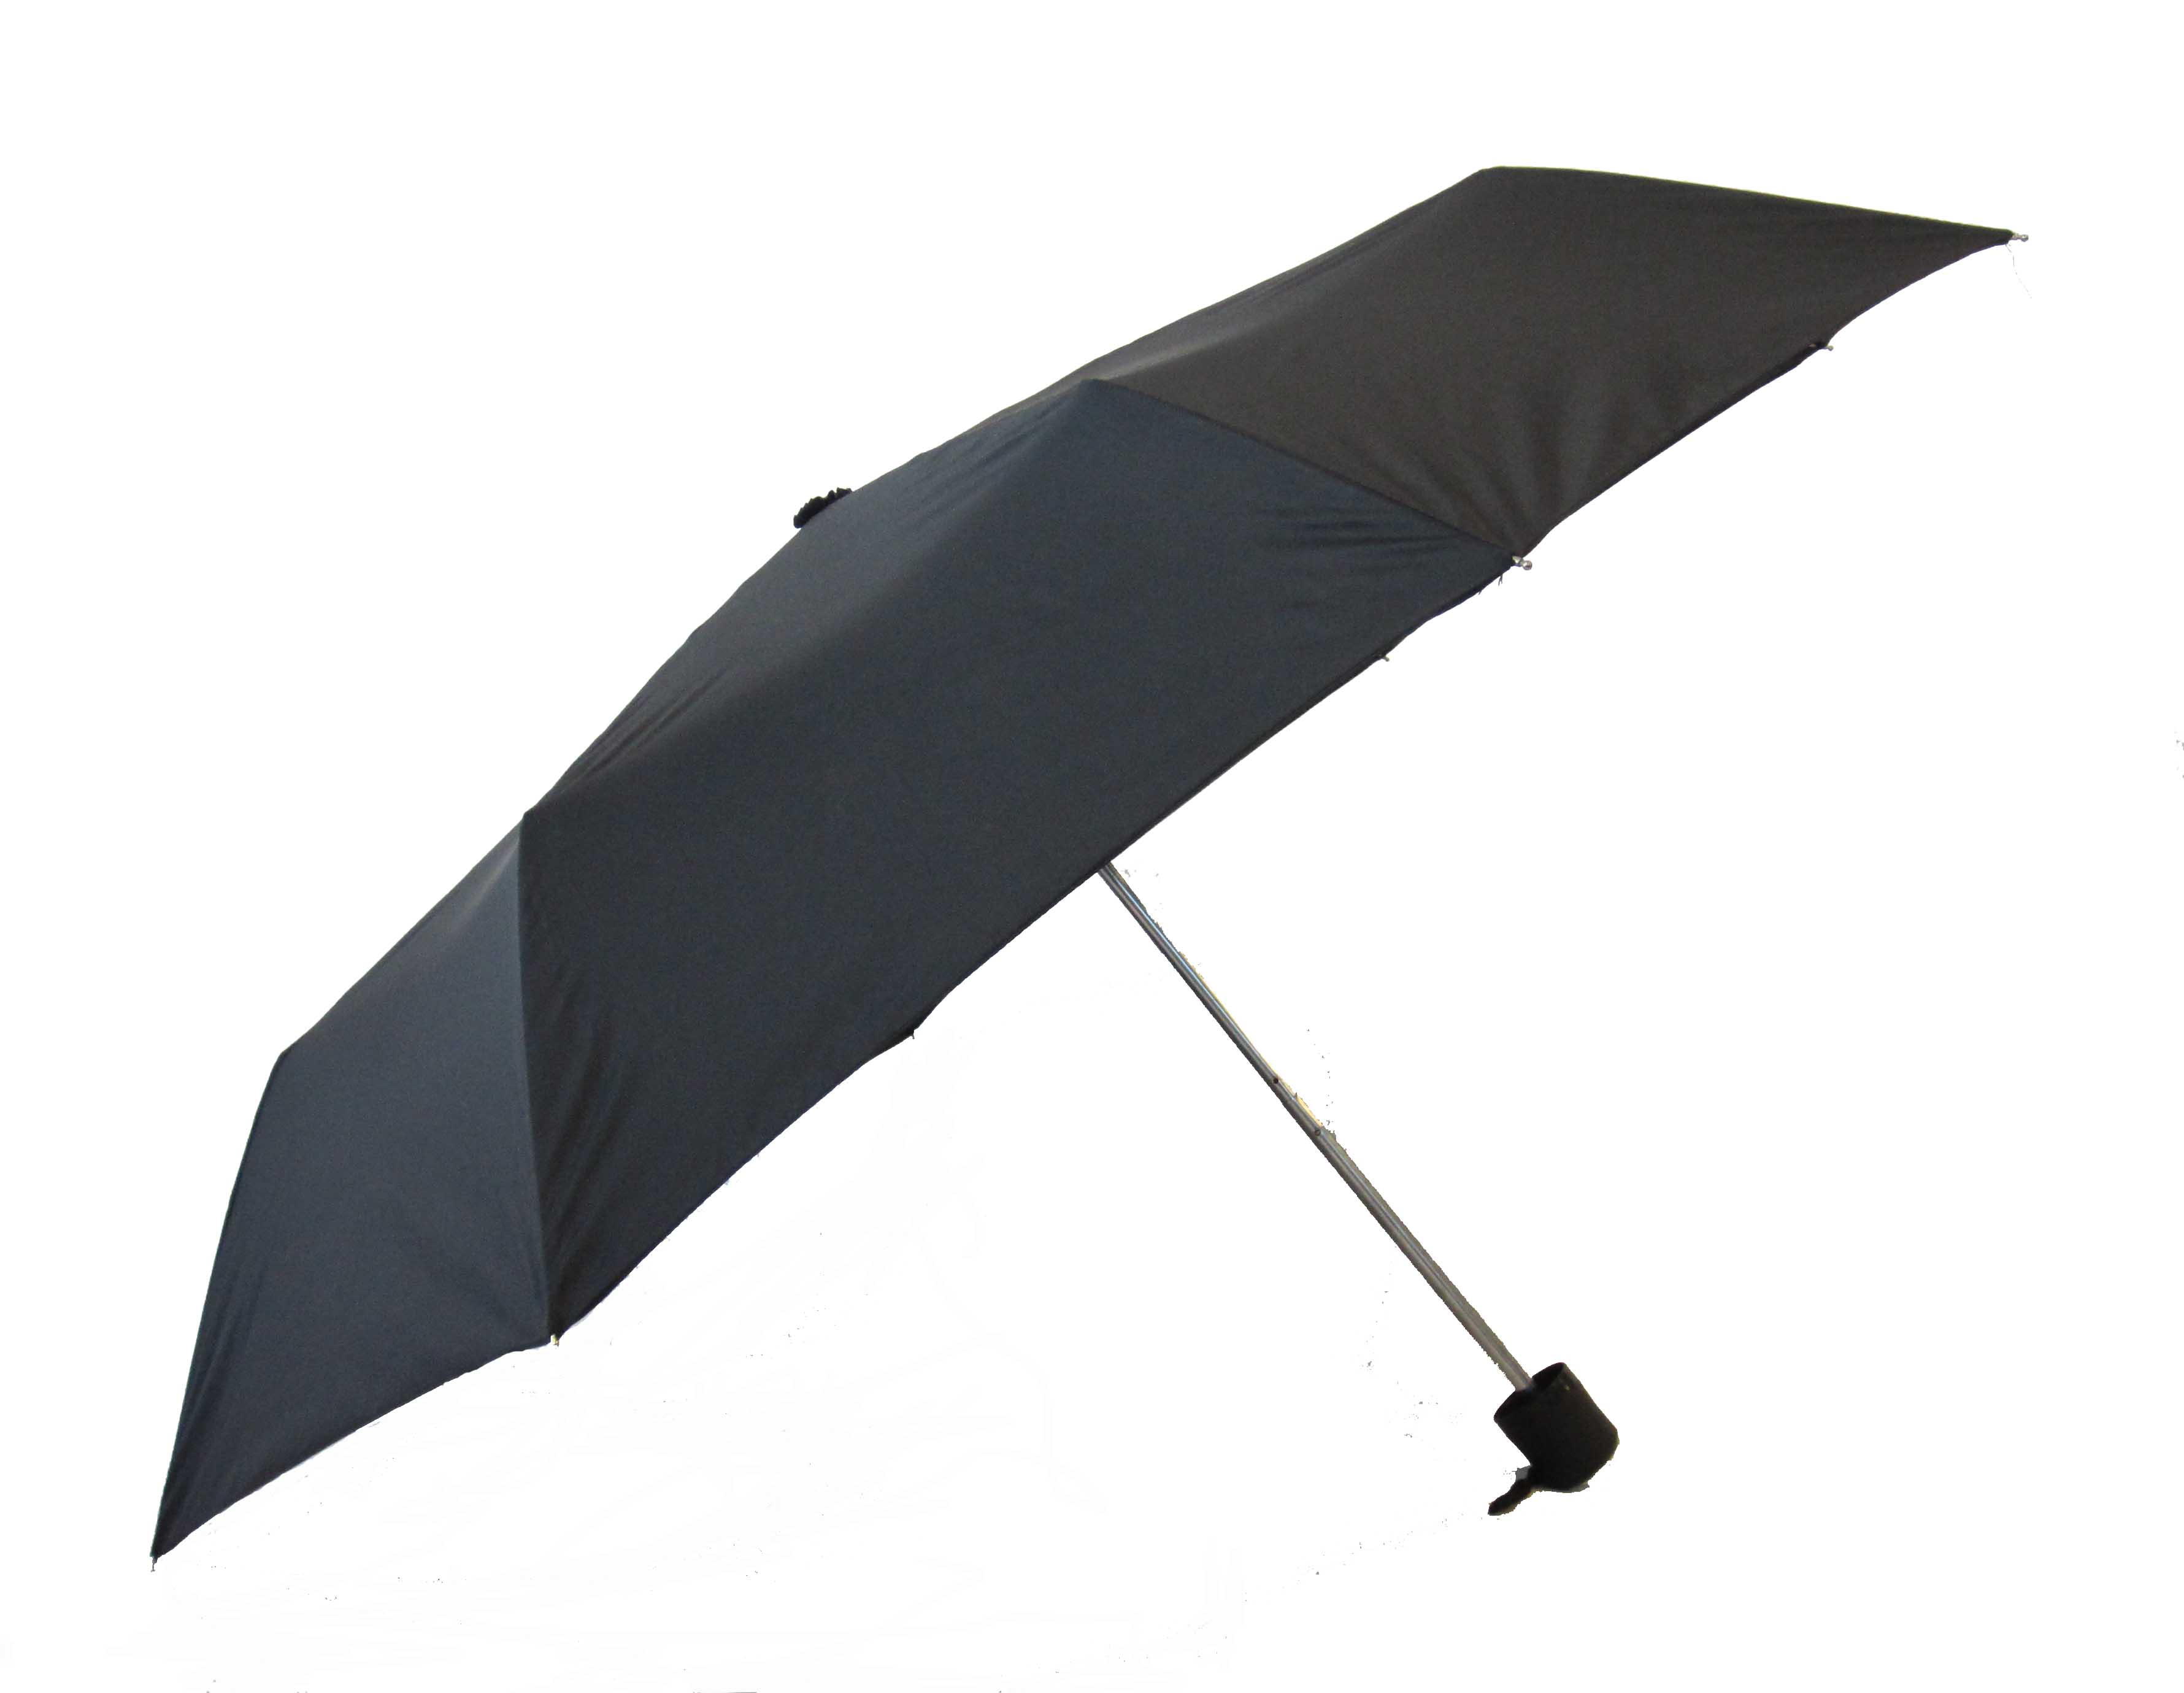 Thrifty Budget Folding Umbrella